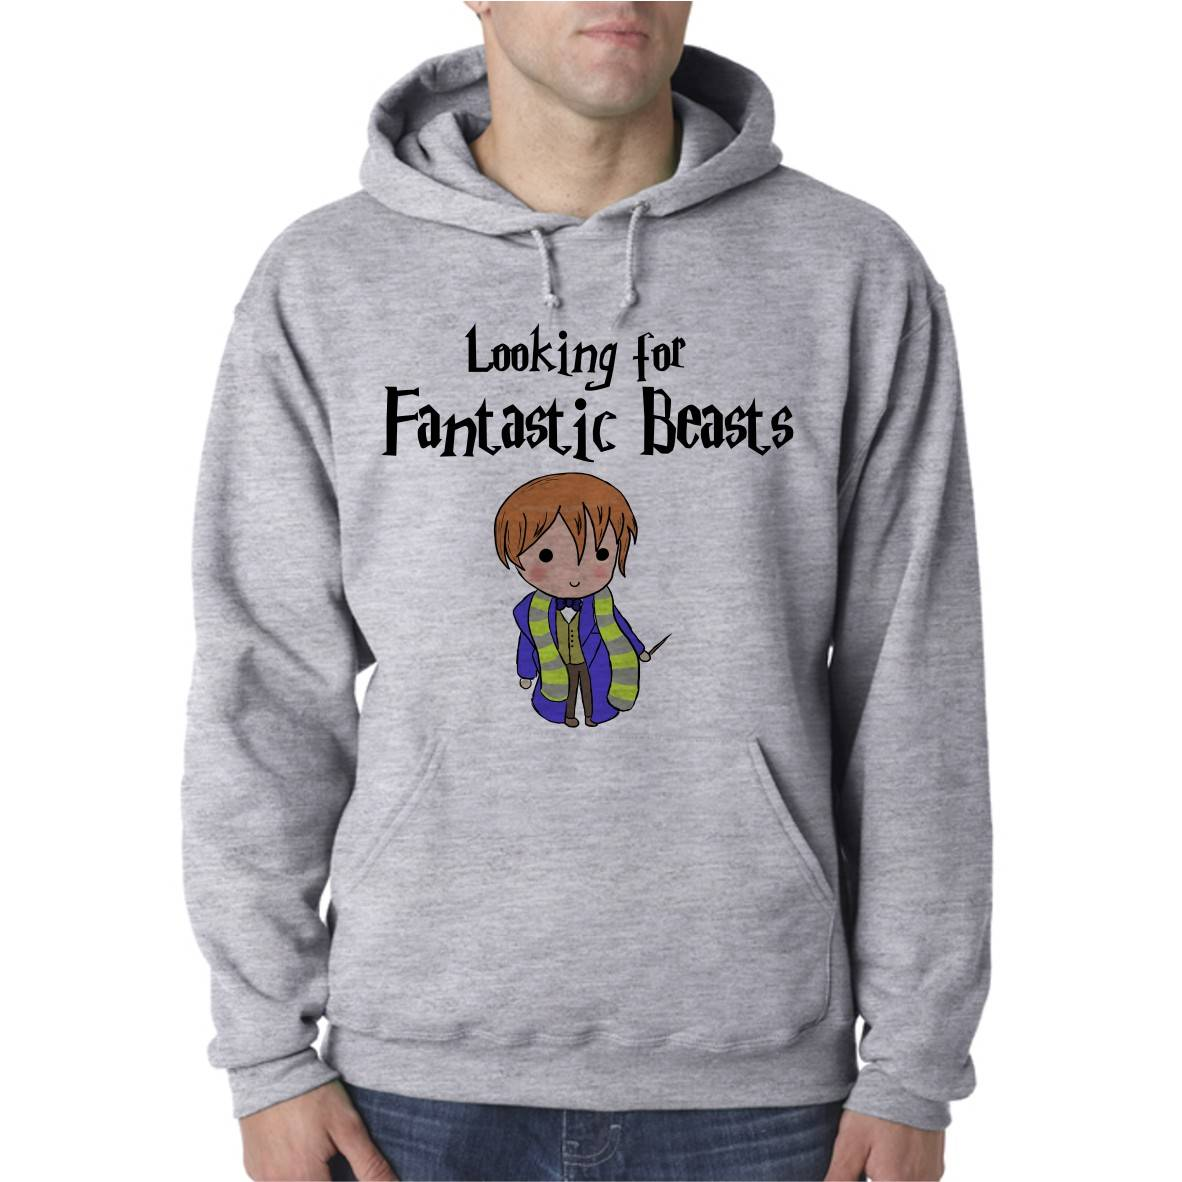 FANTASTIC BEASTS UNISEX HOODED